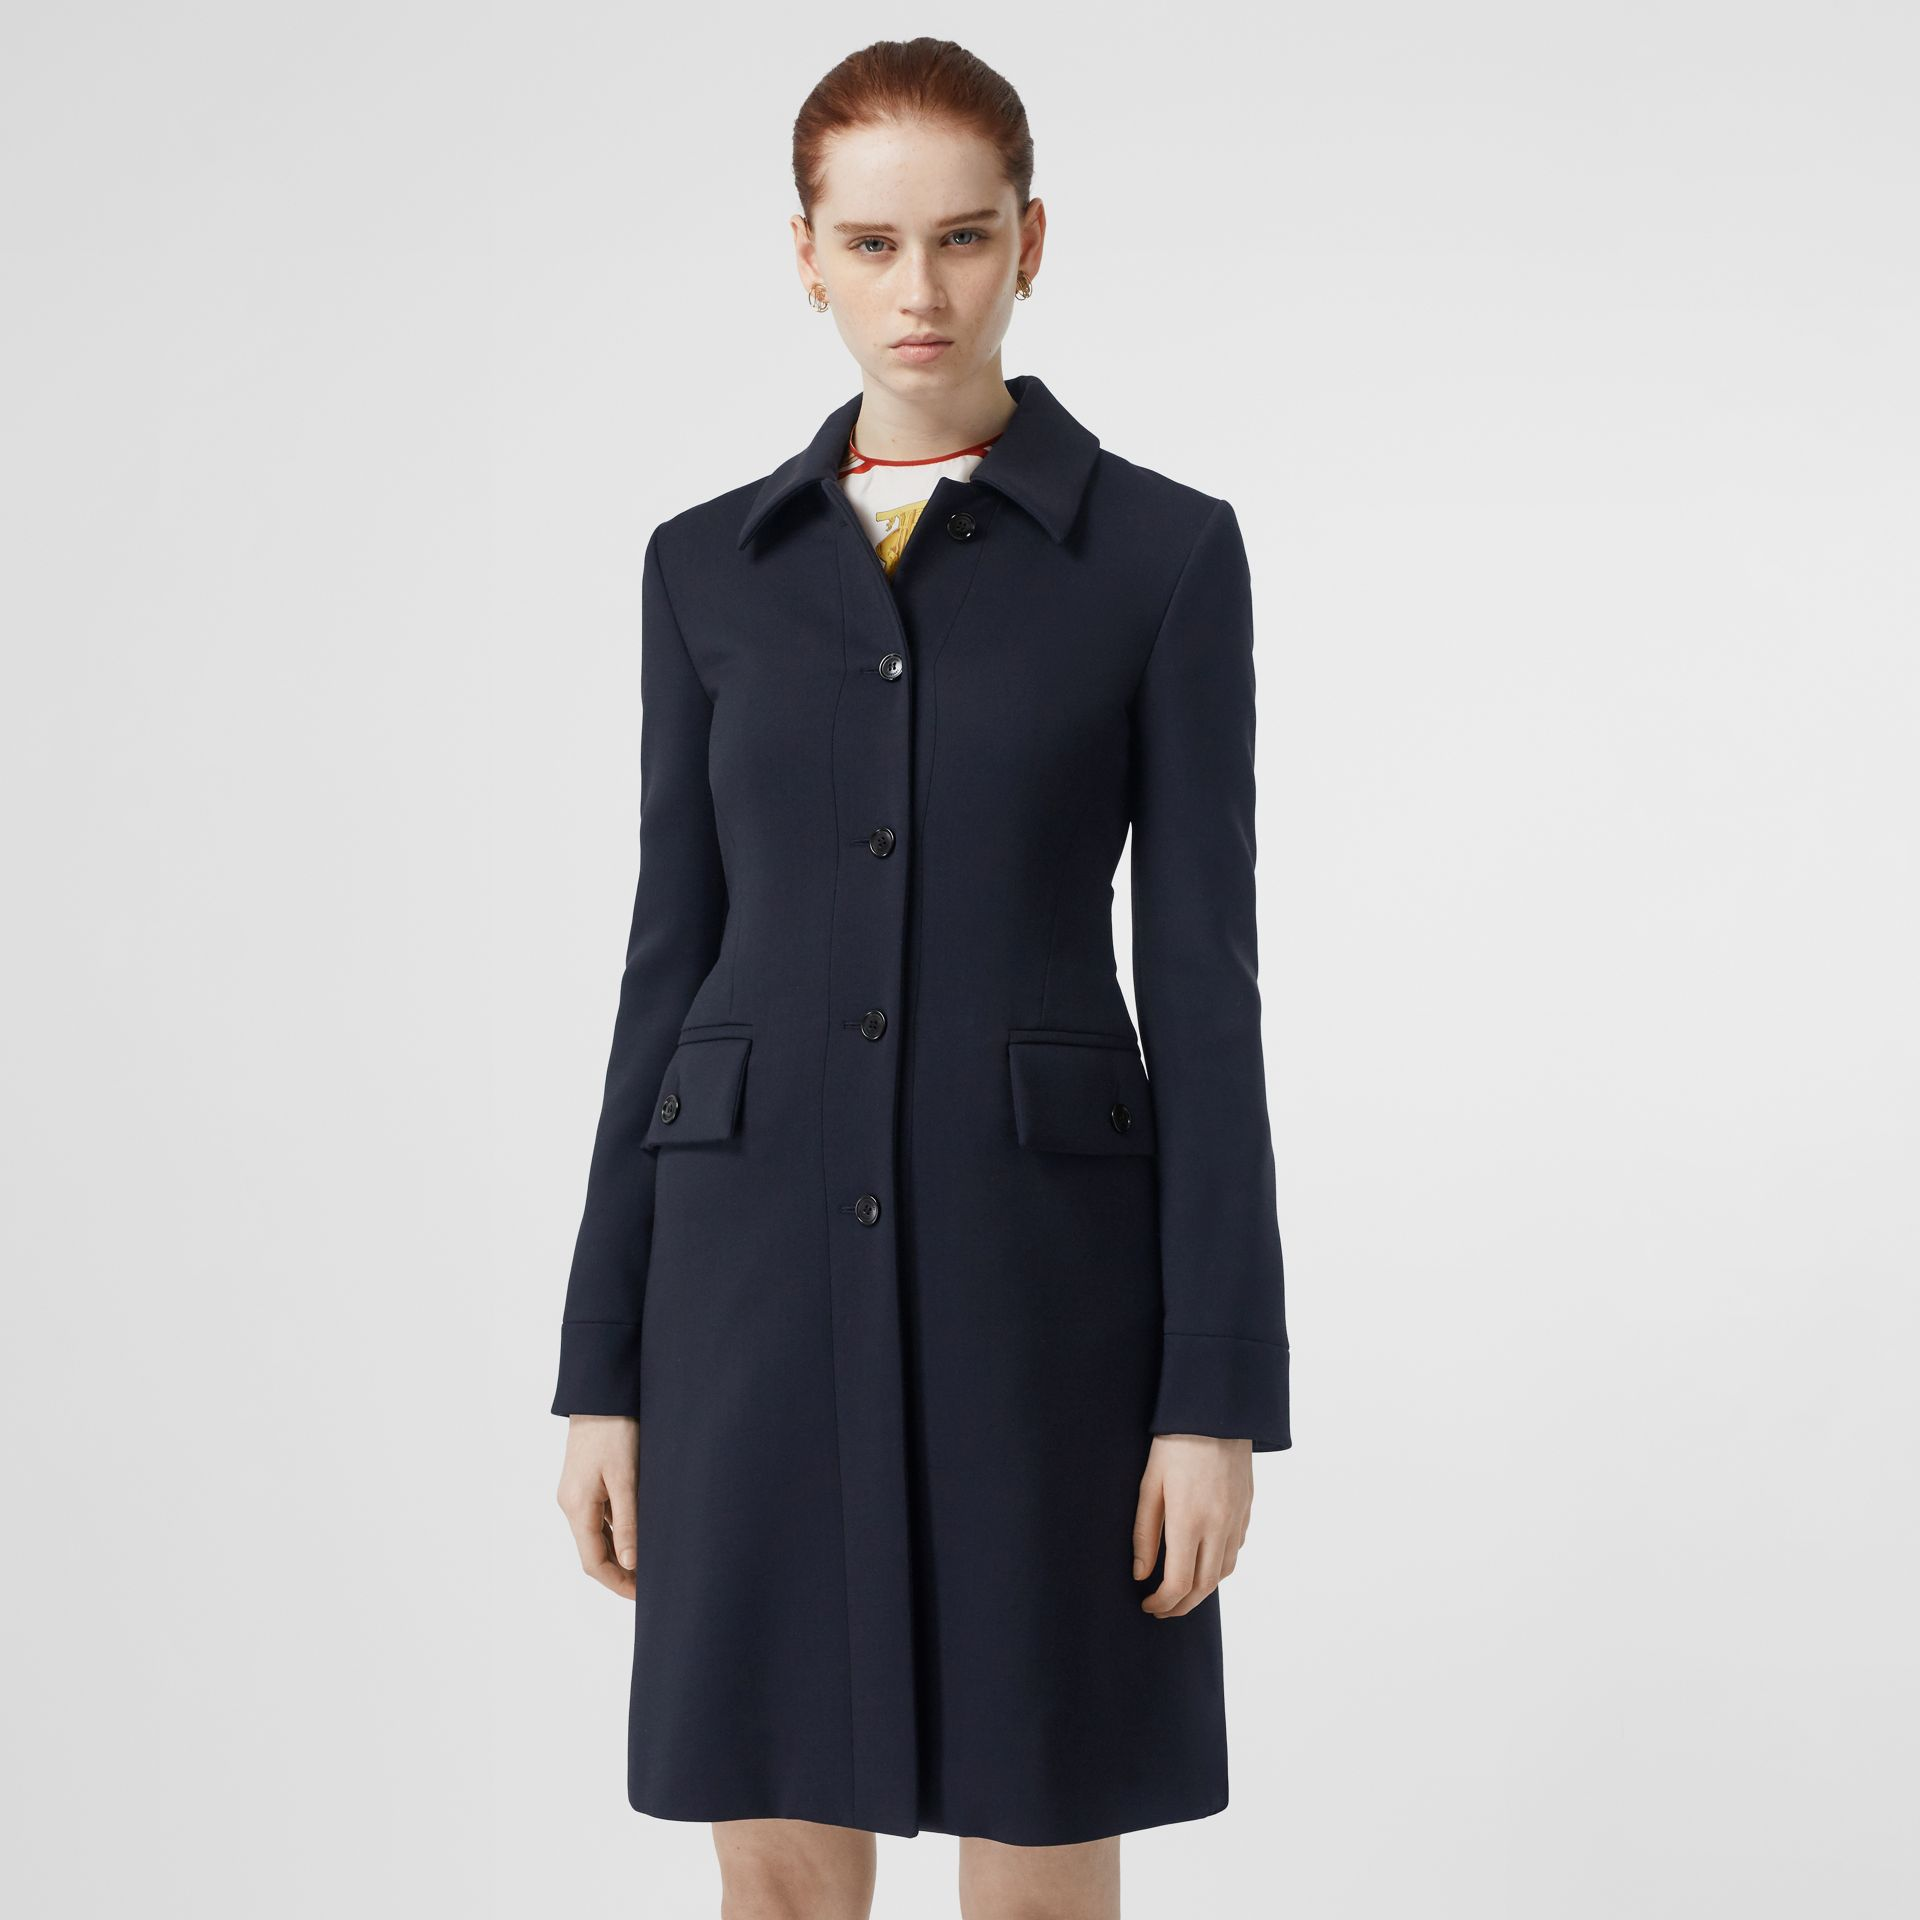 Double-faced Wool Cashmere Blend Coat in Navy - Women | Burberry - gallery image 4